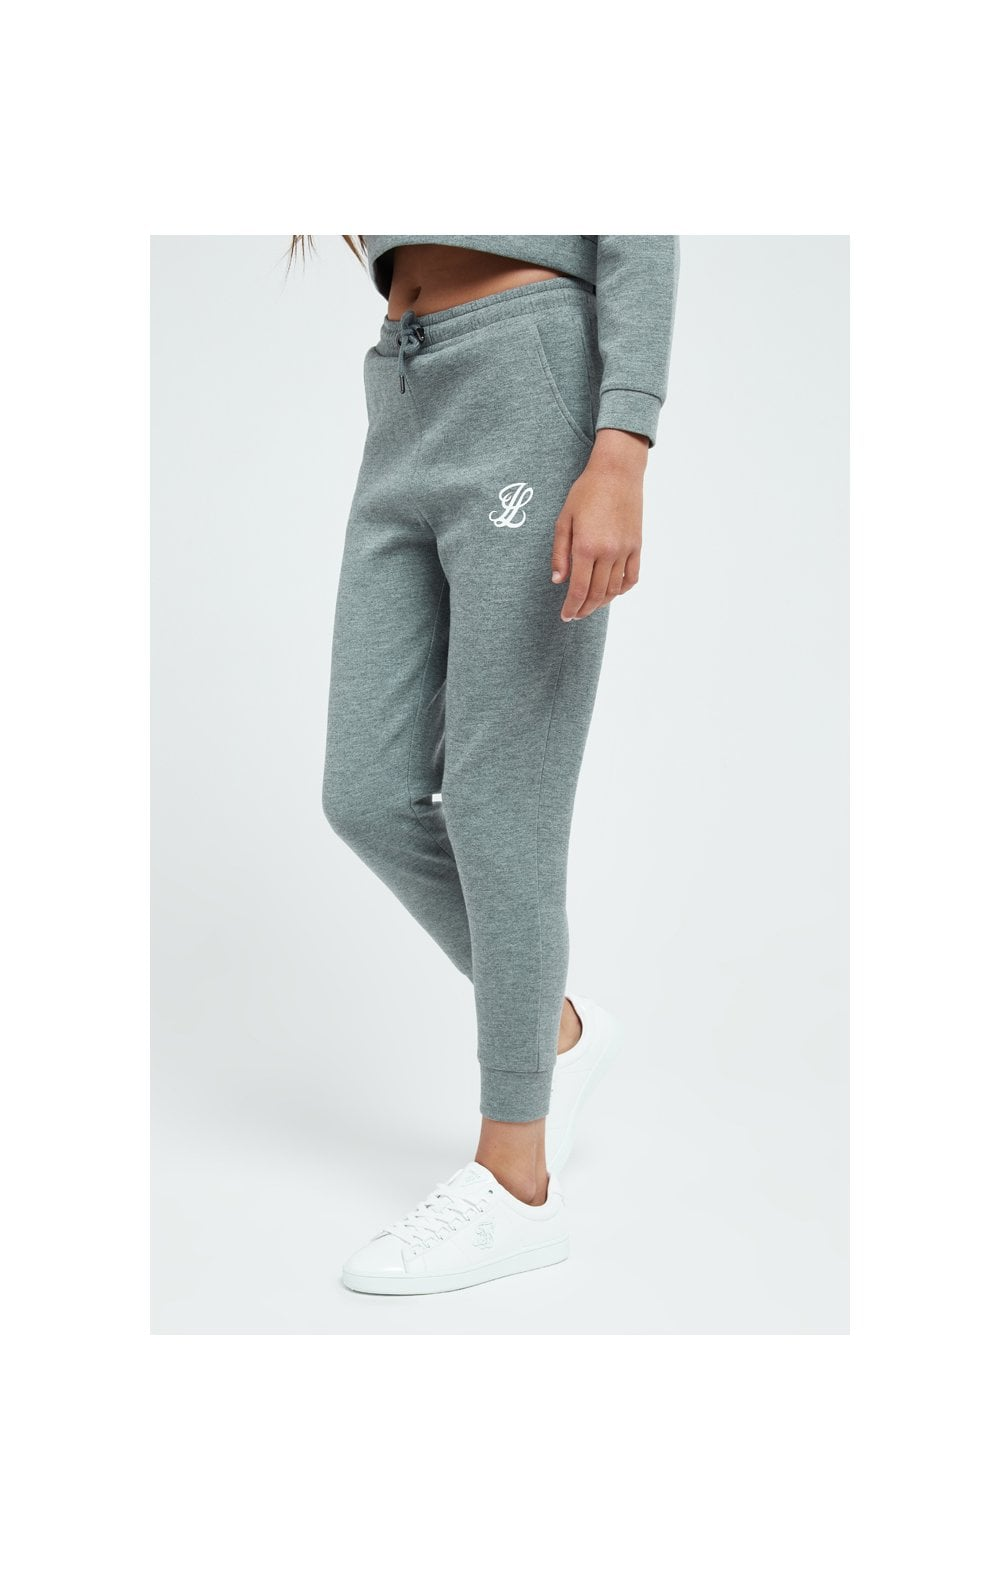 Illusive London Dual Track Pant - Grey Marl